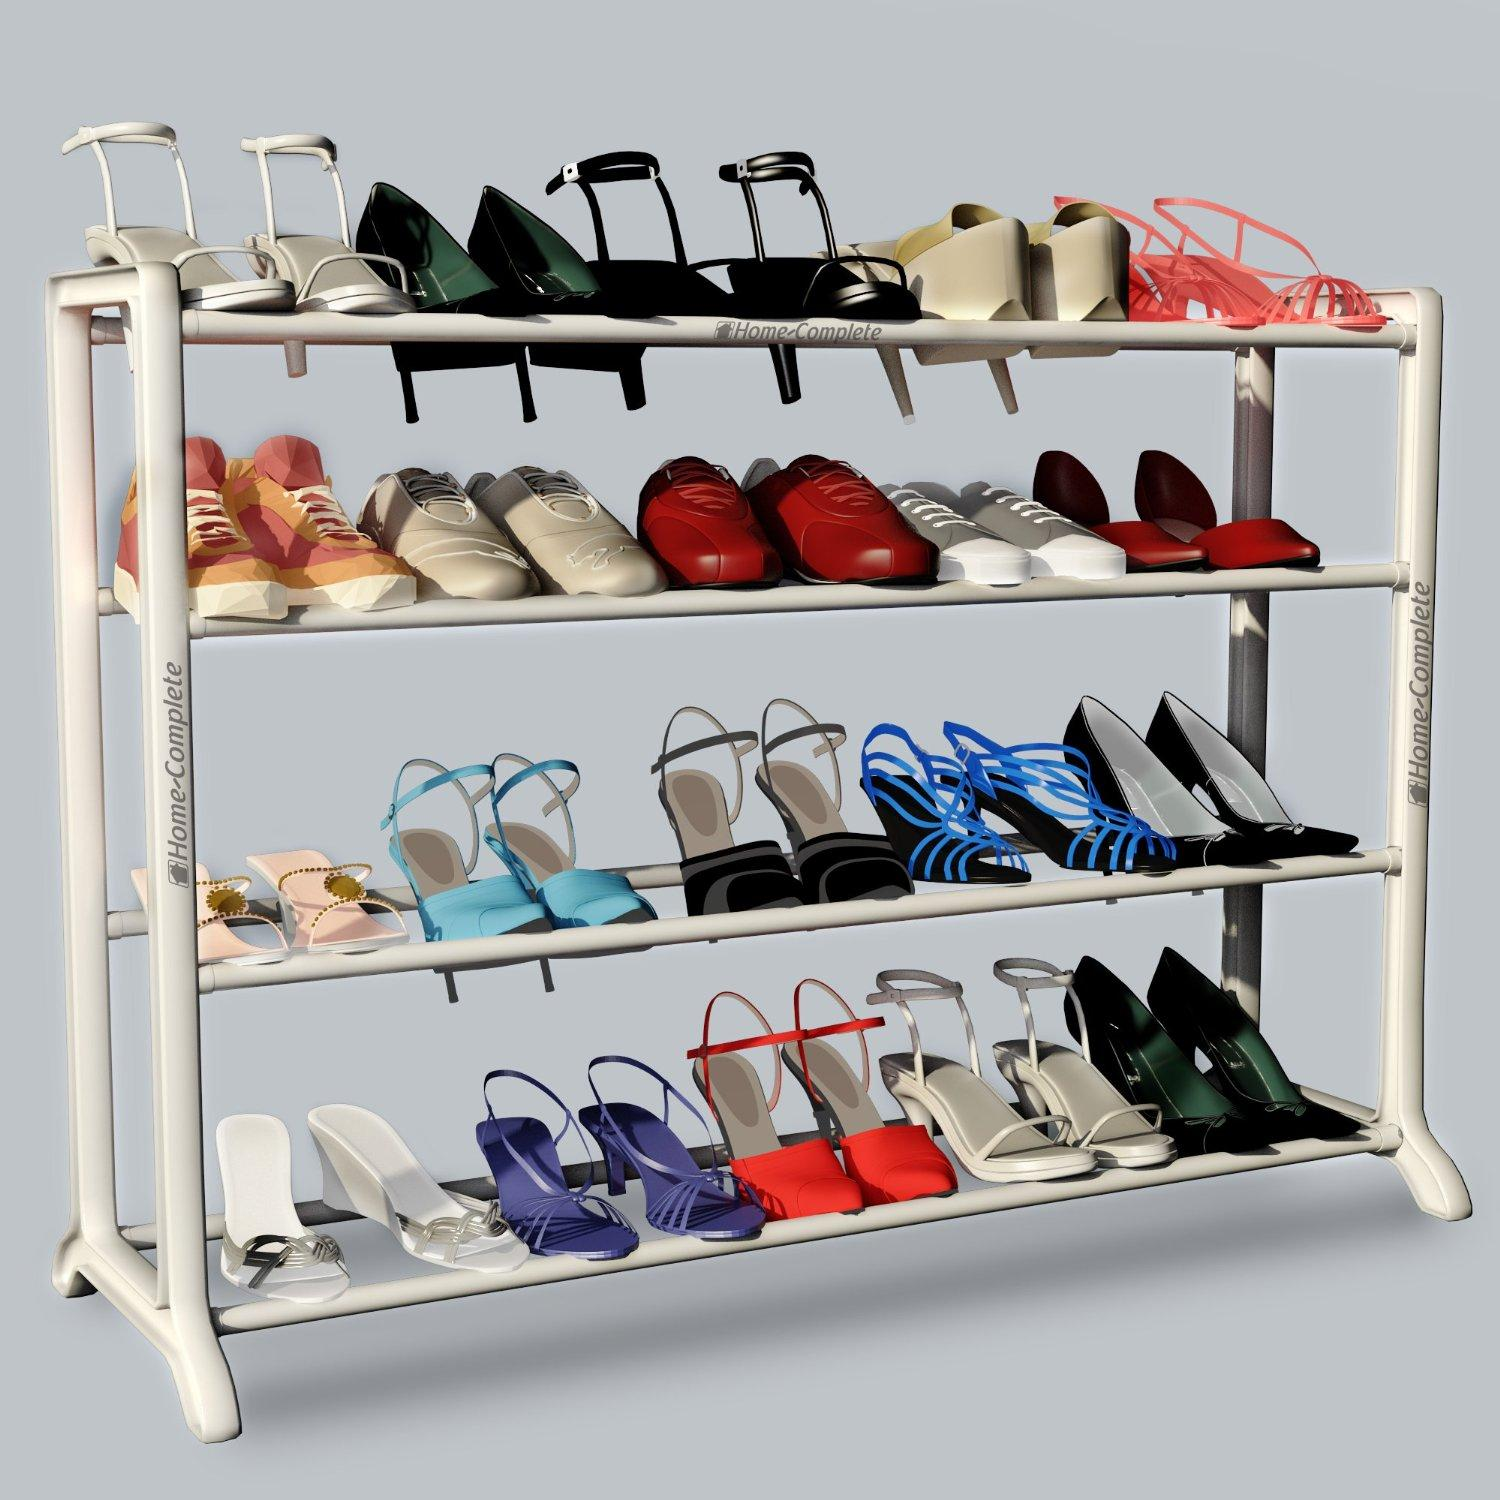 Neatlizer Shoe Rack Organizer Storage Bench